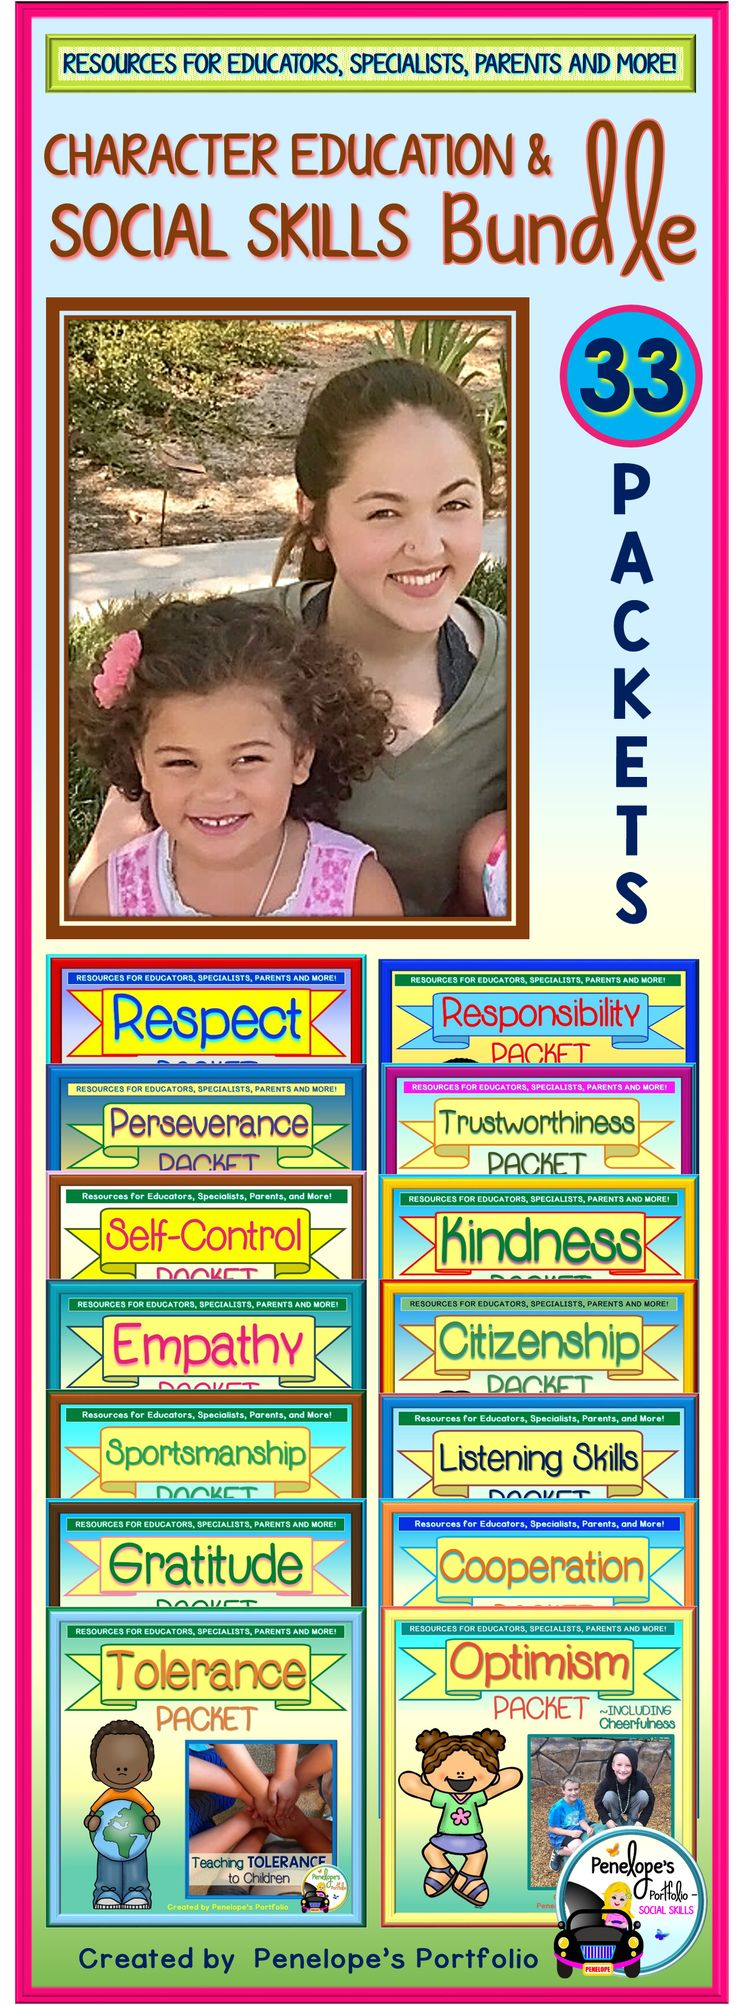 Teaching kids virtues, social skills, and character traits is extremely important. This bundle is made up of all the character education - social skills packets available in my store at a discounted price. Activities, printable, posters, and more!  Great for General Education Teachers. Special Education Teachers, School Counselors, Social Workers, Speech Therapists, Homeschooling Parents.  https://www.teacherspayteachers.com/Product/Character-Education-Social-Skills-BUNDLE-2185002